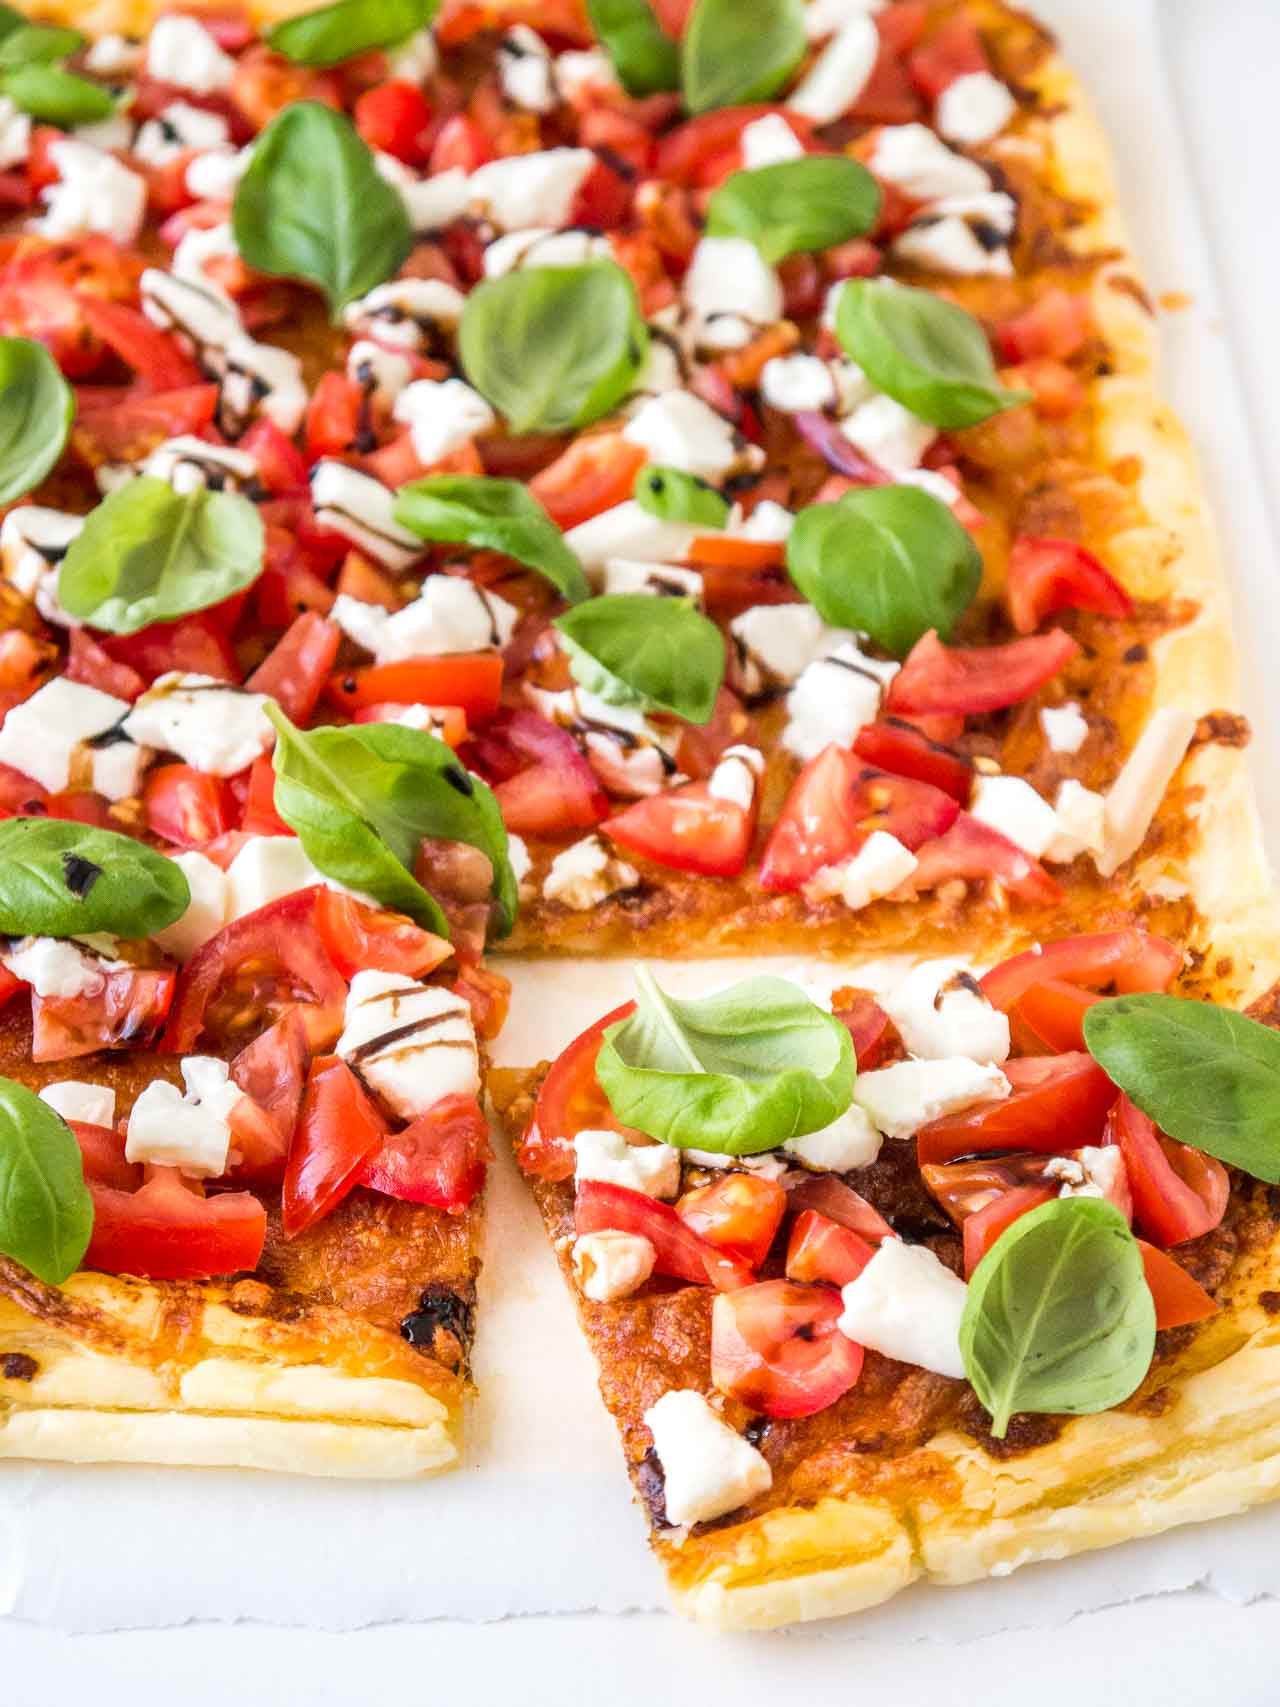 Tomato Mozzarella Puff Pastry Pizza is super easy and fast to make! Crisp pastry brushed with pesto and topped with fresh tomatoes, mozzarella, and basil.